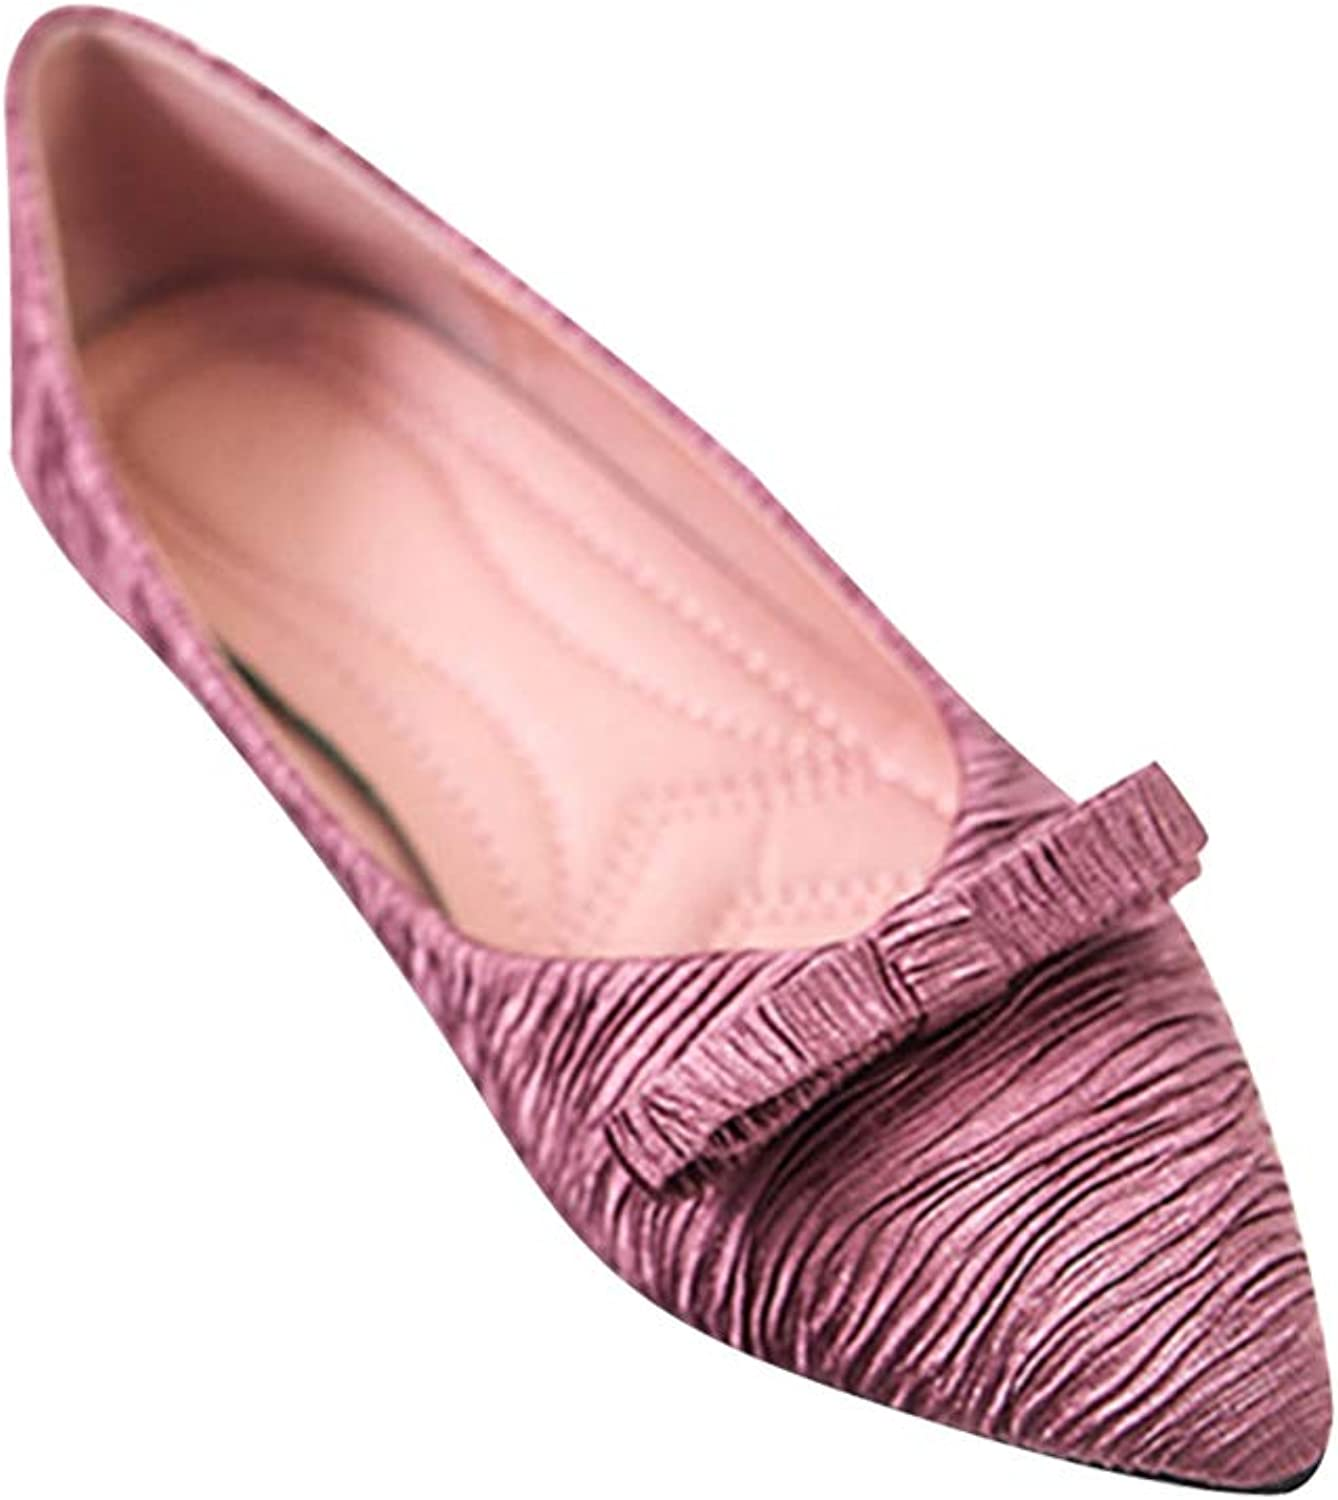 Yudesun Women Ballet Flats shoes - Pointed Single Fold Up Shallow Mouth Casual Slip On Bow Loafers Walking Office Girl shoes